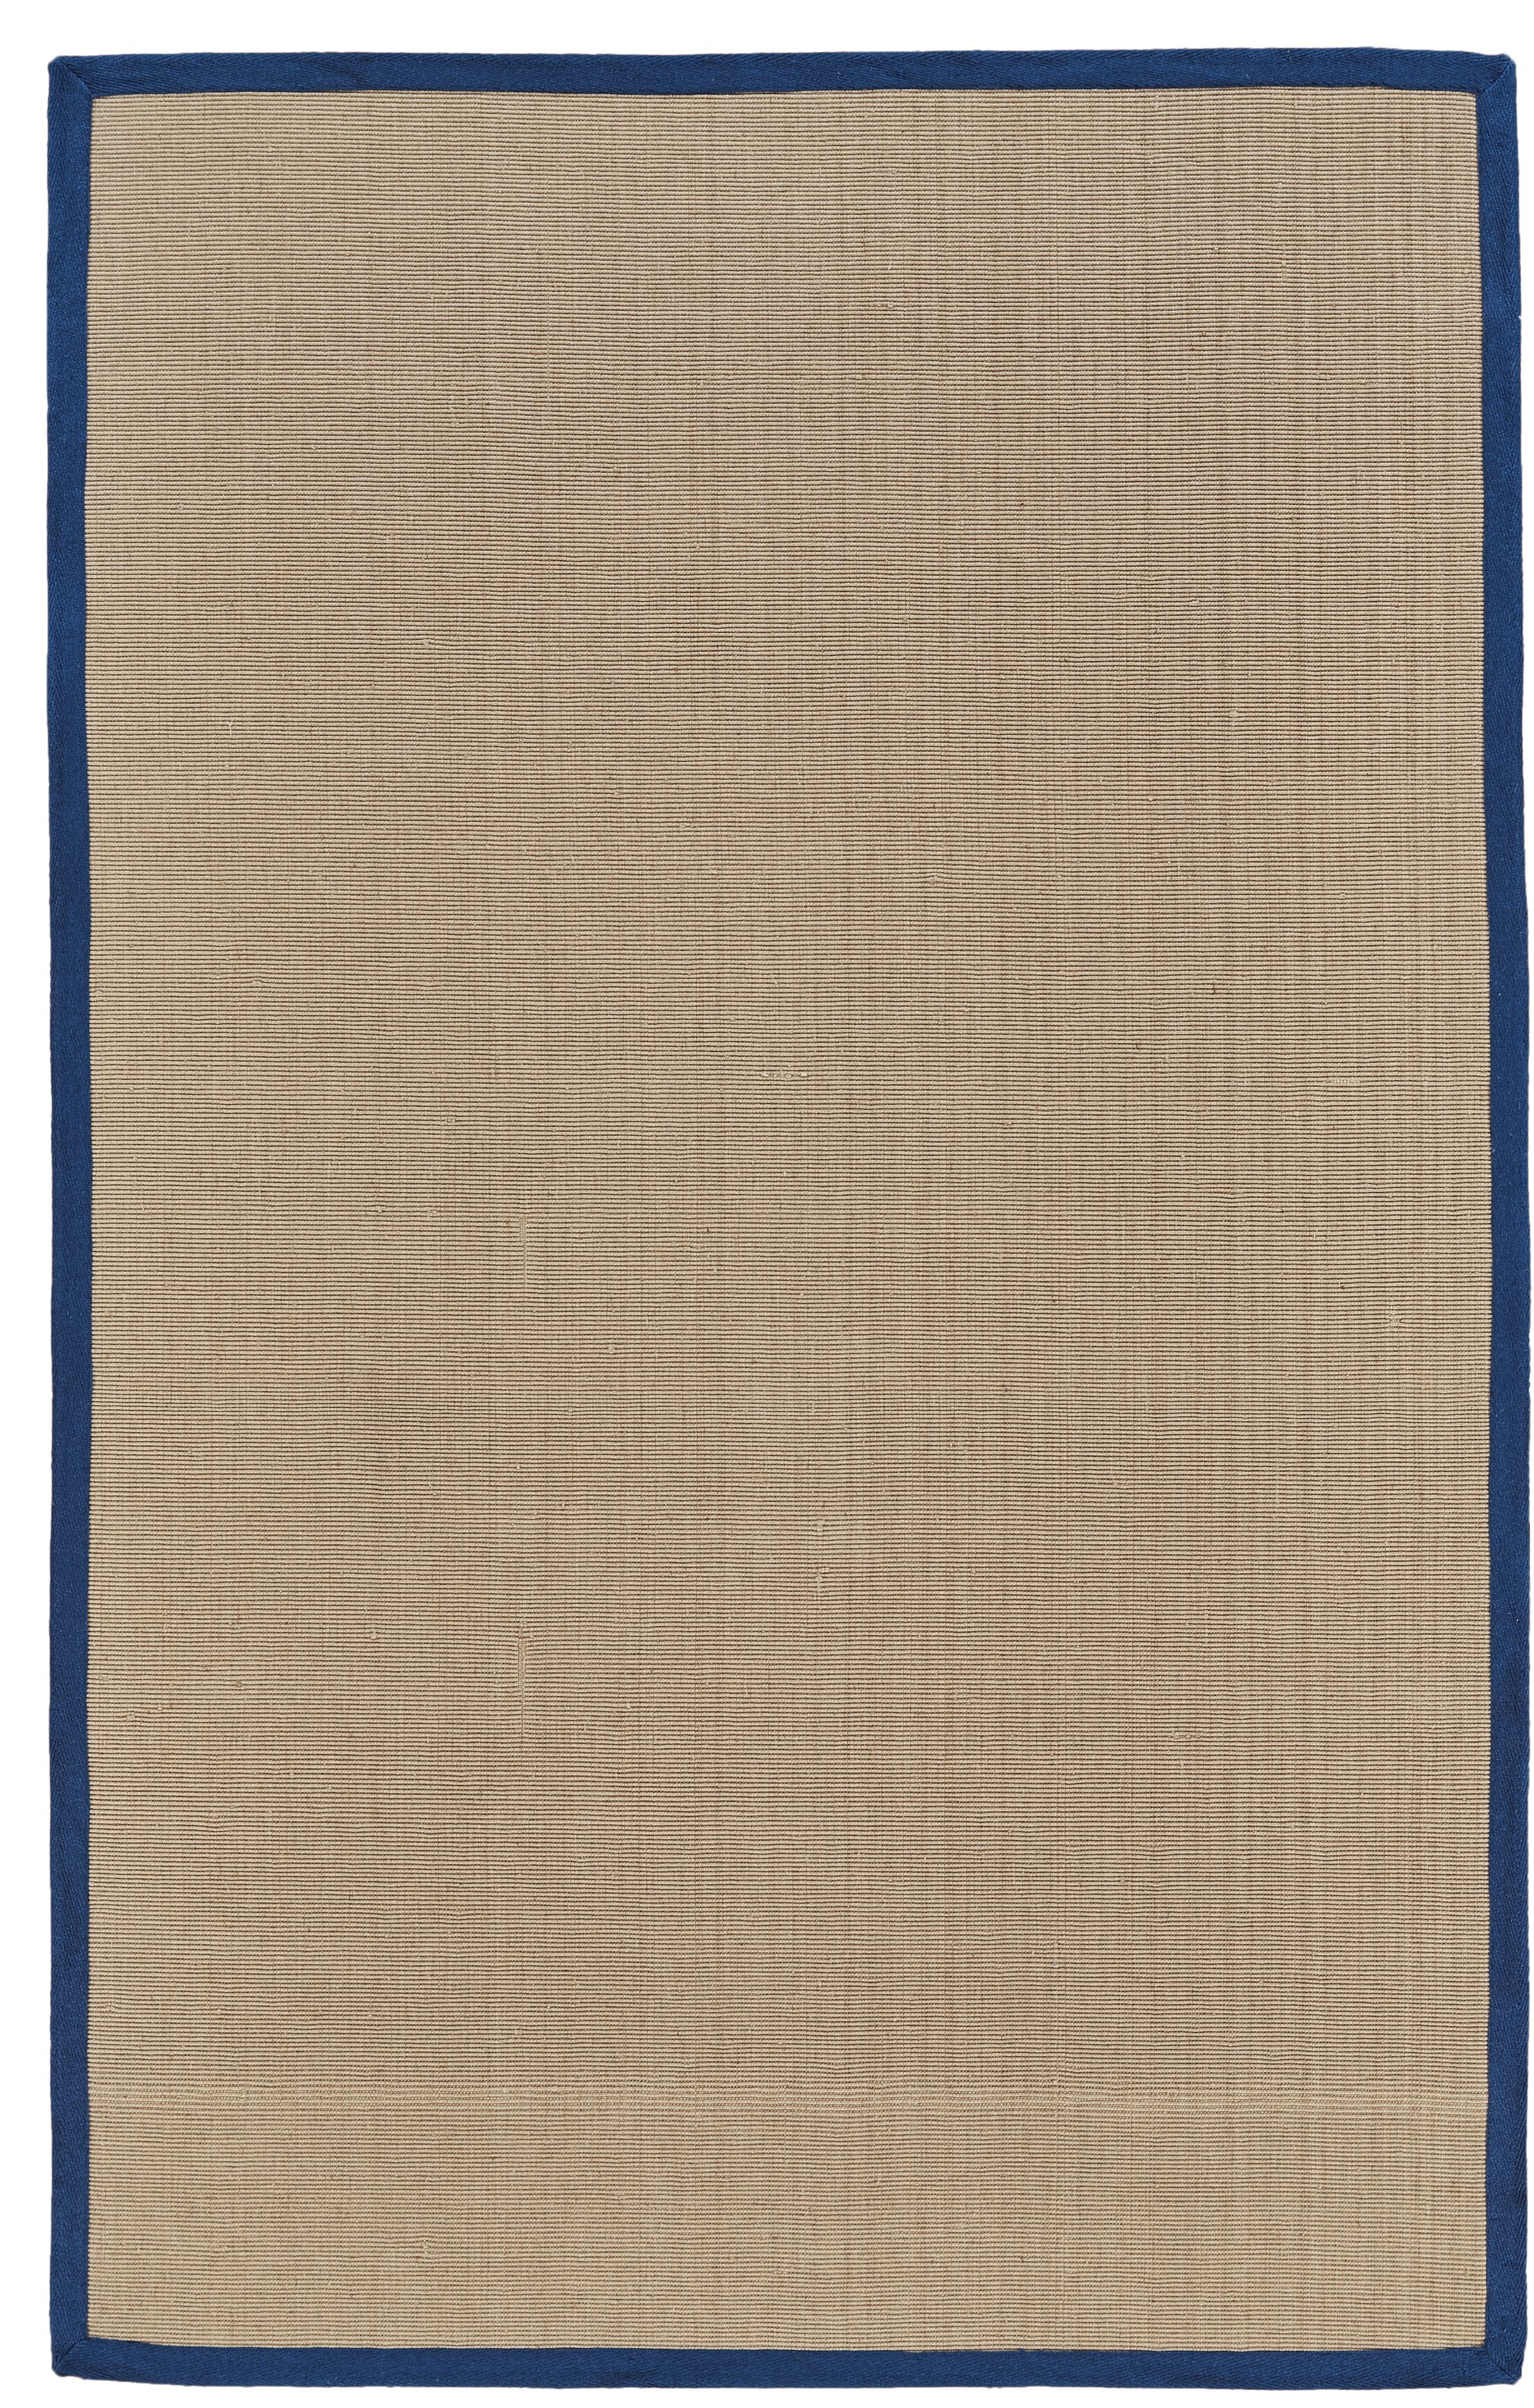 Ivydale Hand-Woven Blue Indoor Area Rug Rug Size: Rectangle 5' x 8'